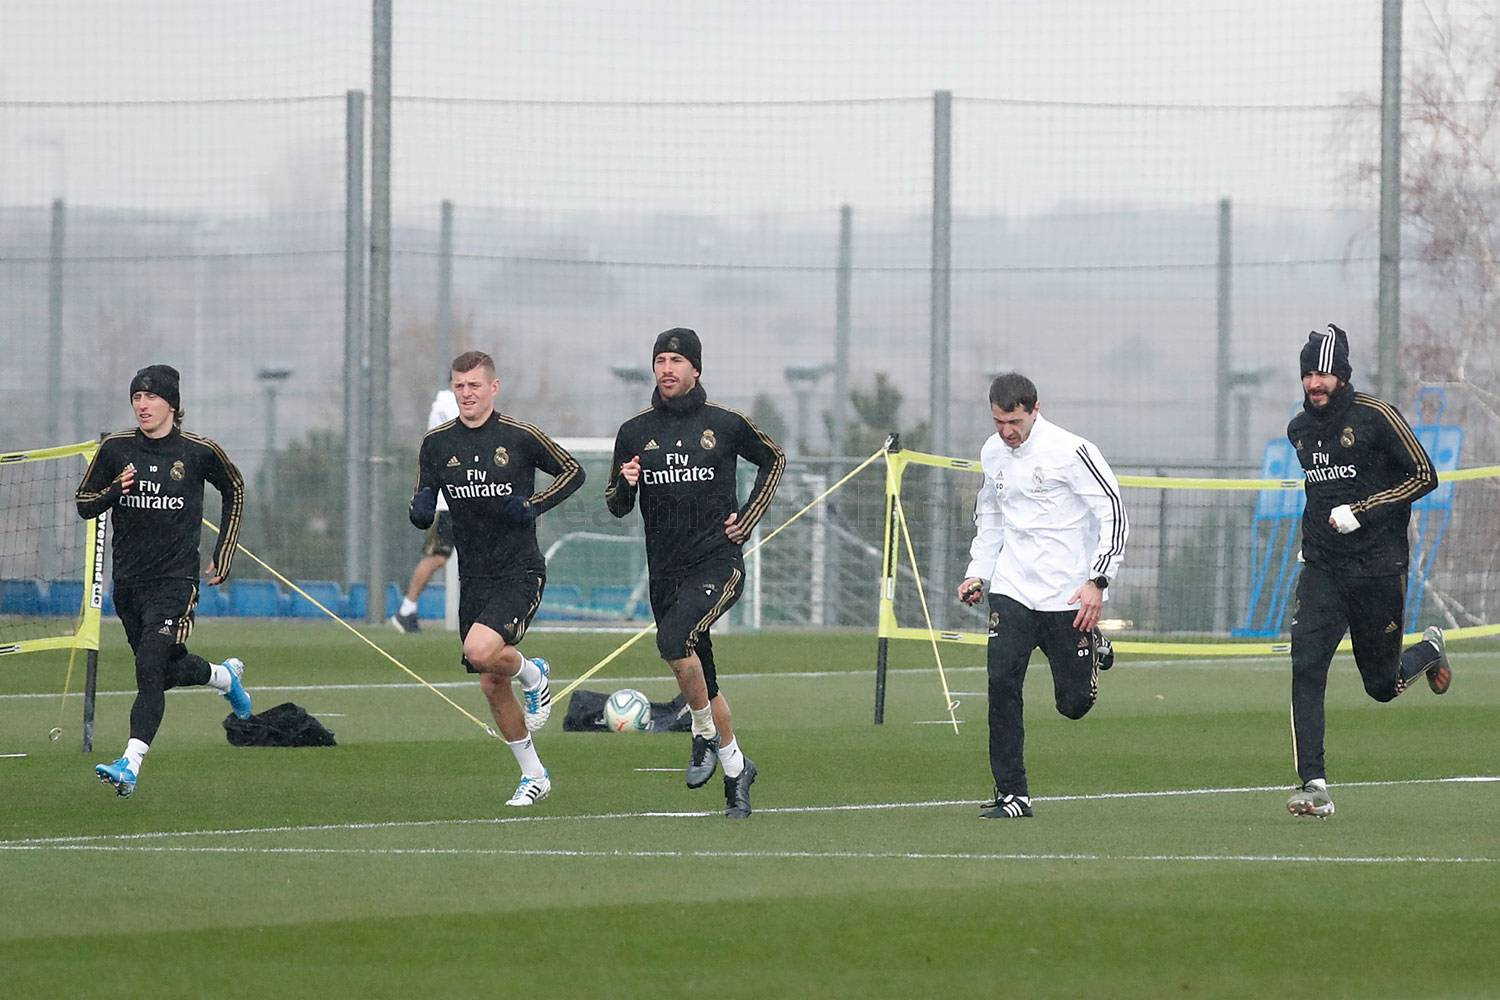 Real Madrid - Entrenamiento del Real Madrid  - 17-12-2019